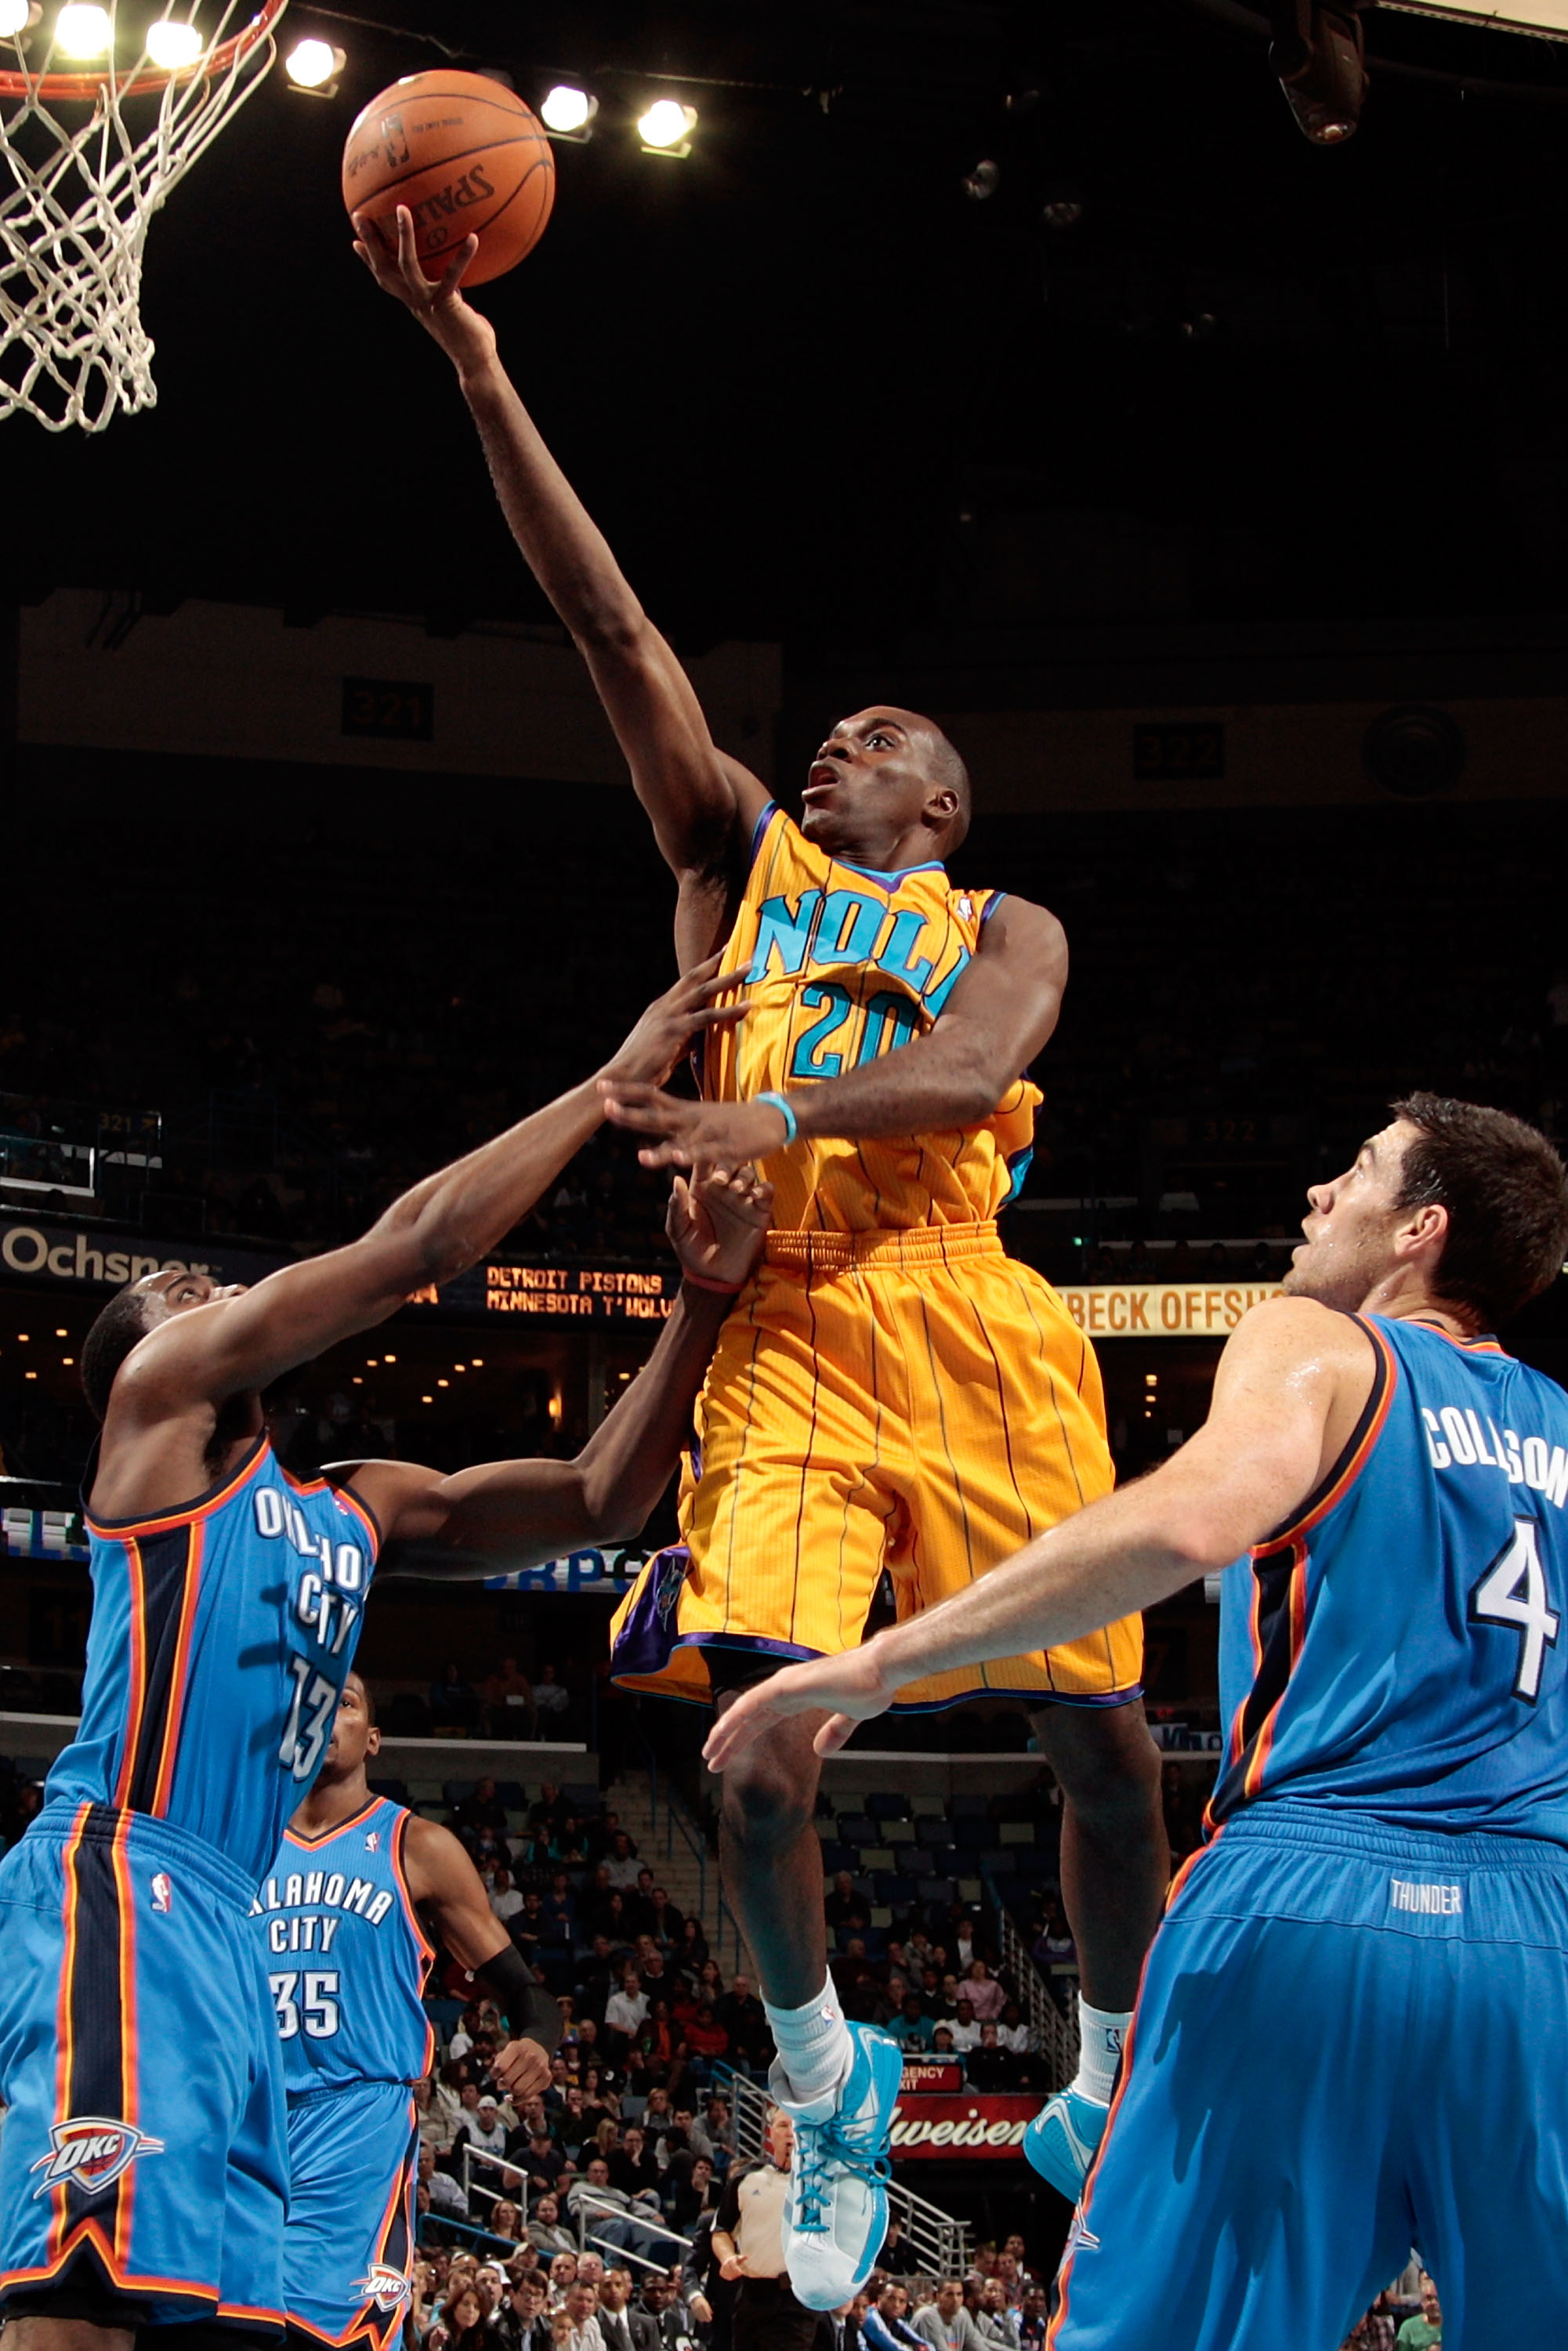 NEW ORLEANS, LA - DECEMBER 10:  Quincy Pondexter #20 of the New Orleans Hornets shoots the ball over James Harden #13 and Nick Collison #4 of the Oklahoma City Thunder at New Orleans Arena on December 10, 2010 in New Orleans, Louisiana.    NOTE TO USER: U